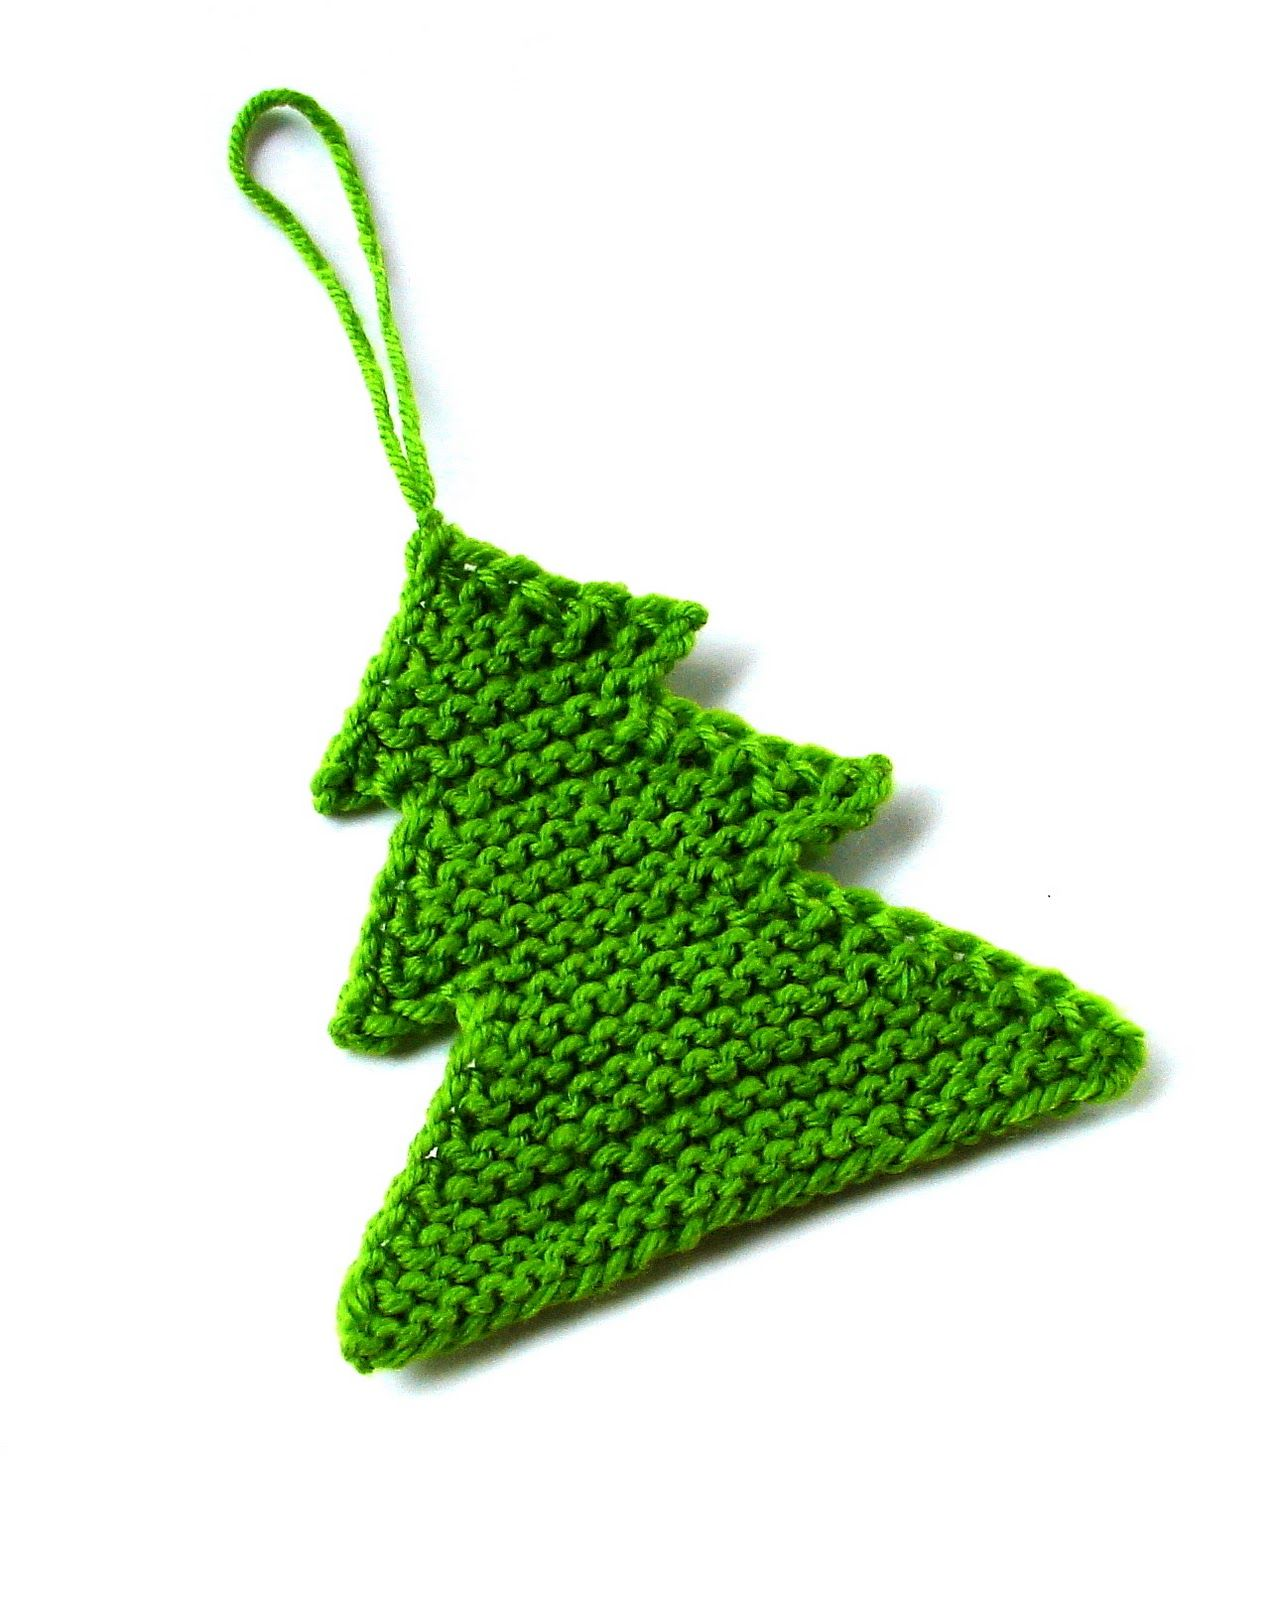 Ferby Rsquo S Corner Shares A Great Tutorial For This Hand Knitted